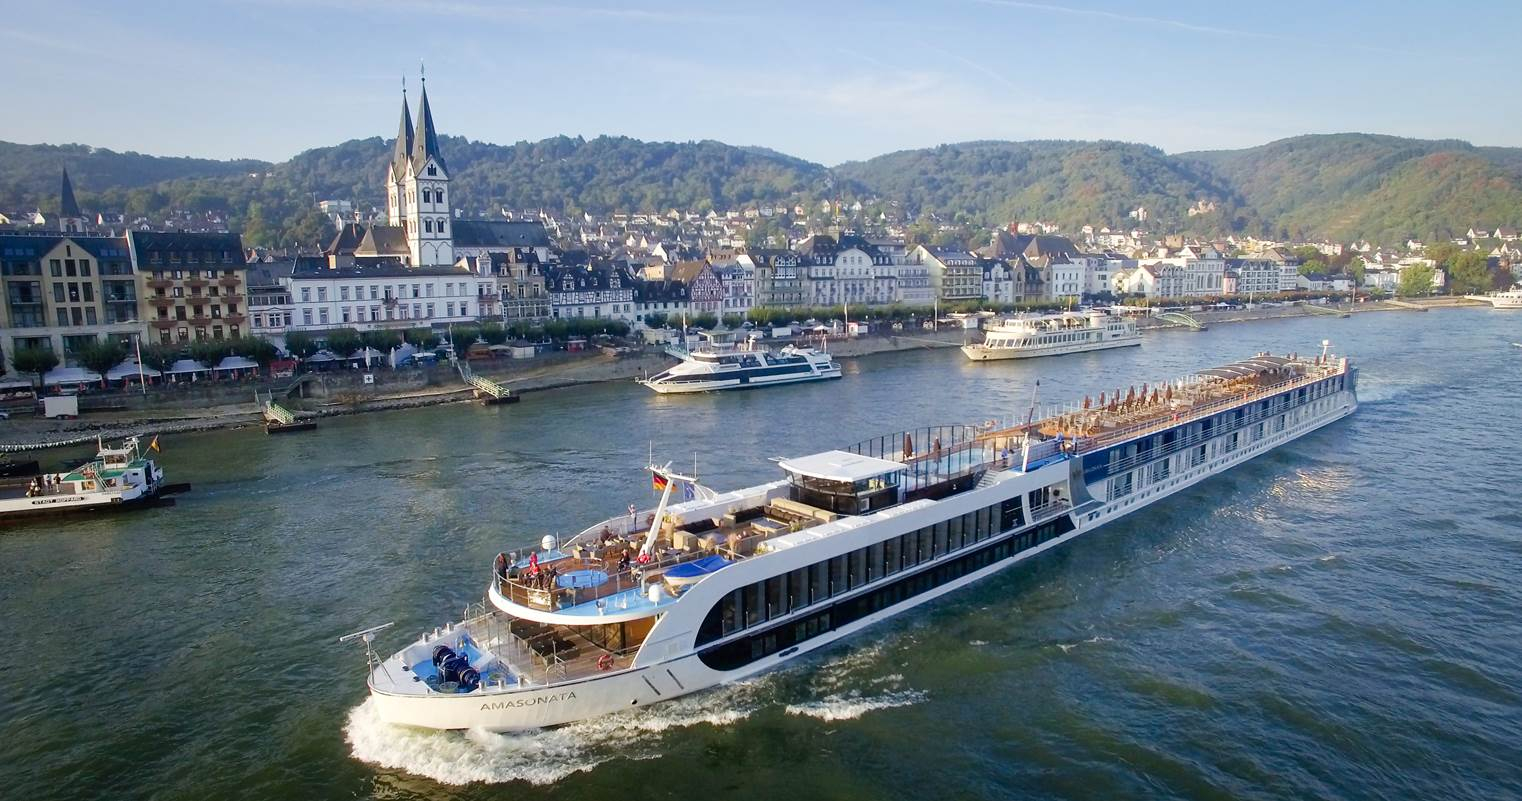 amawaterways christmas market cruise reviews